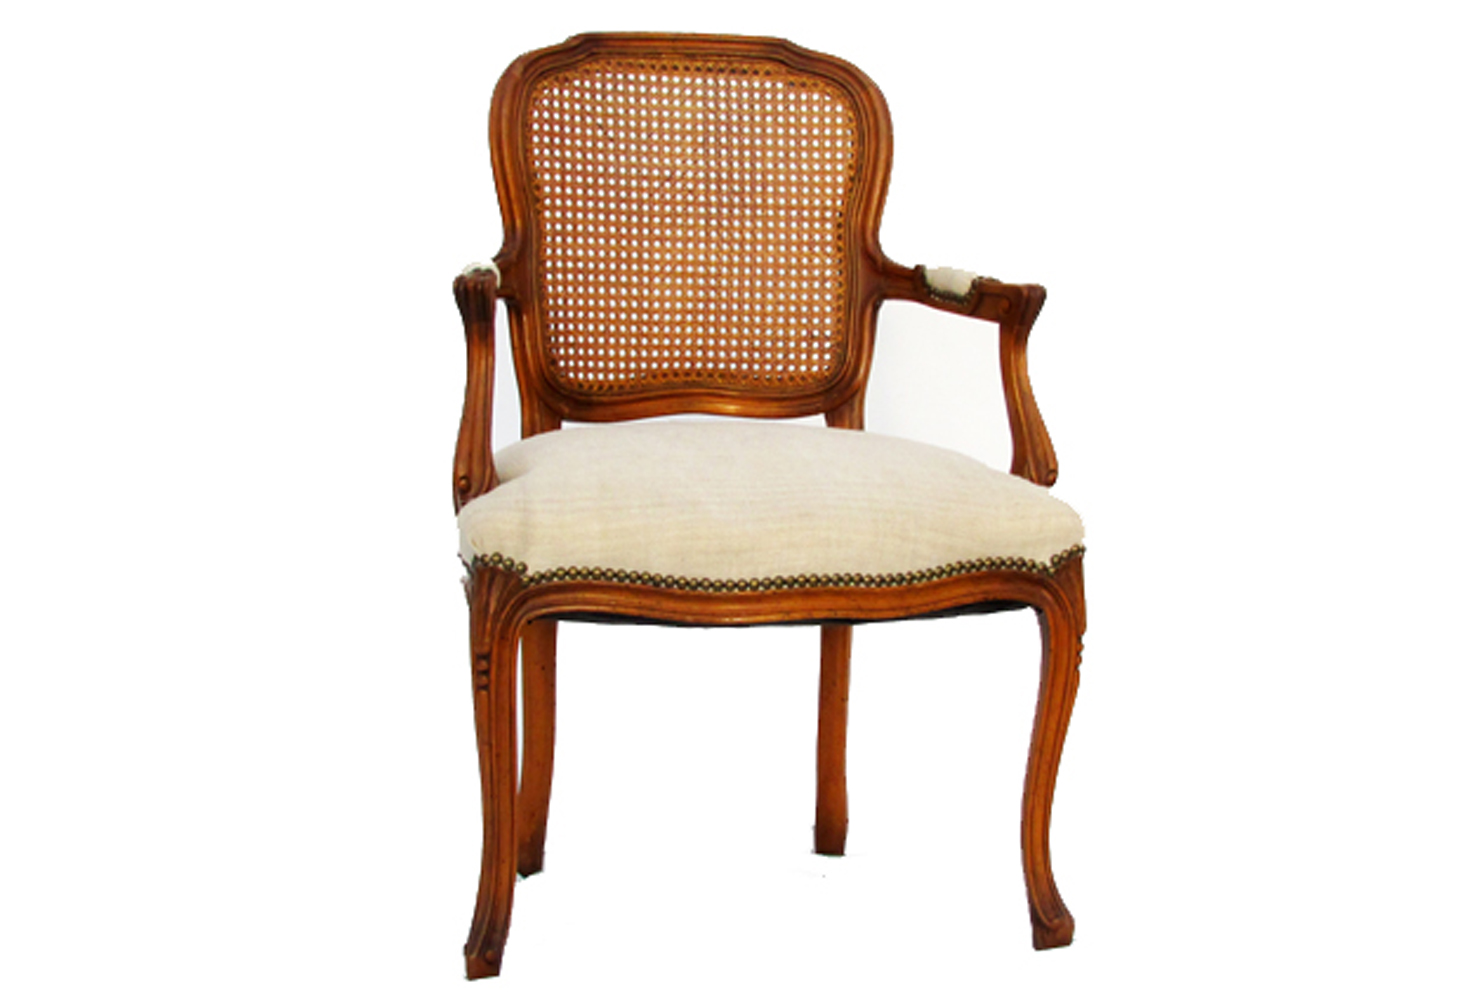 Antique French Cane Back Arm Chair - Antique French Cane Back Arm Chair Omero Home